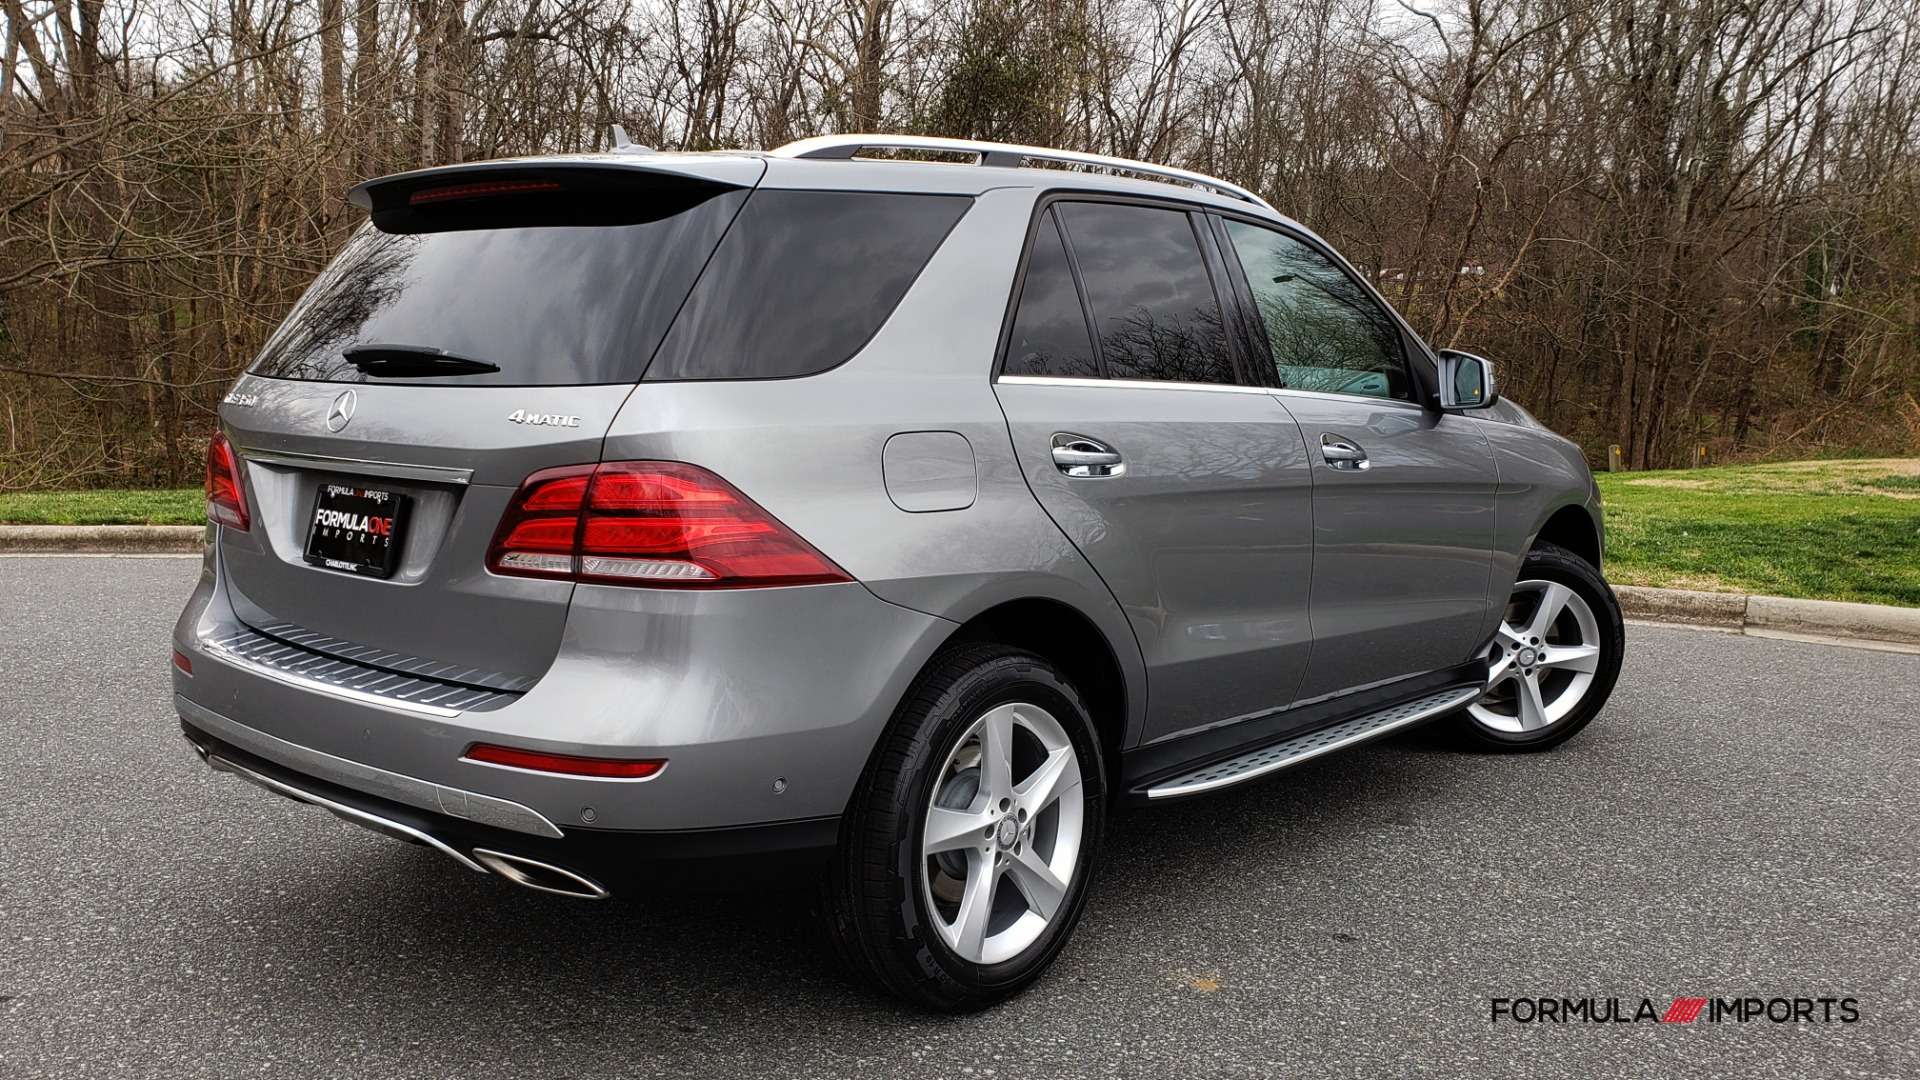 Used 2016 Mercedes-Benz GLE 350 4MATIC / PREMIUM / LIGHTING / NAV / SUNROOF / HTD STS / REAR for sale Sold at Formula Imports in Charlotte NC 28227 6